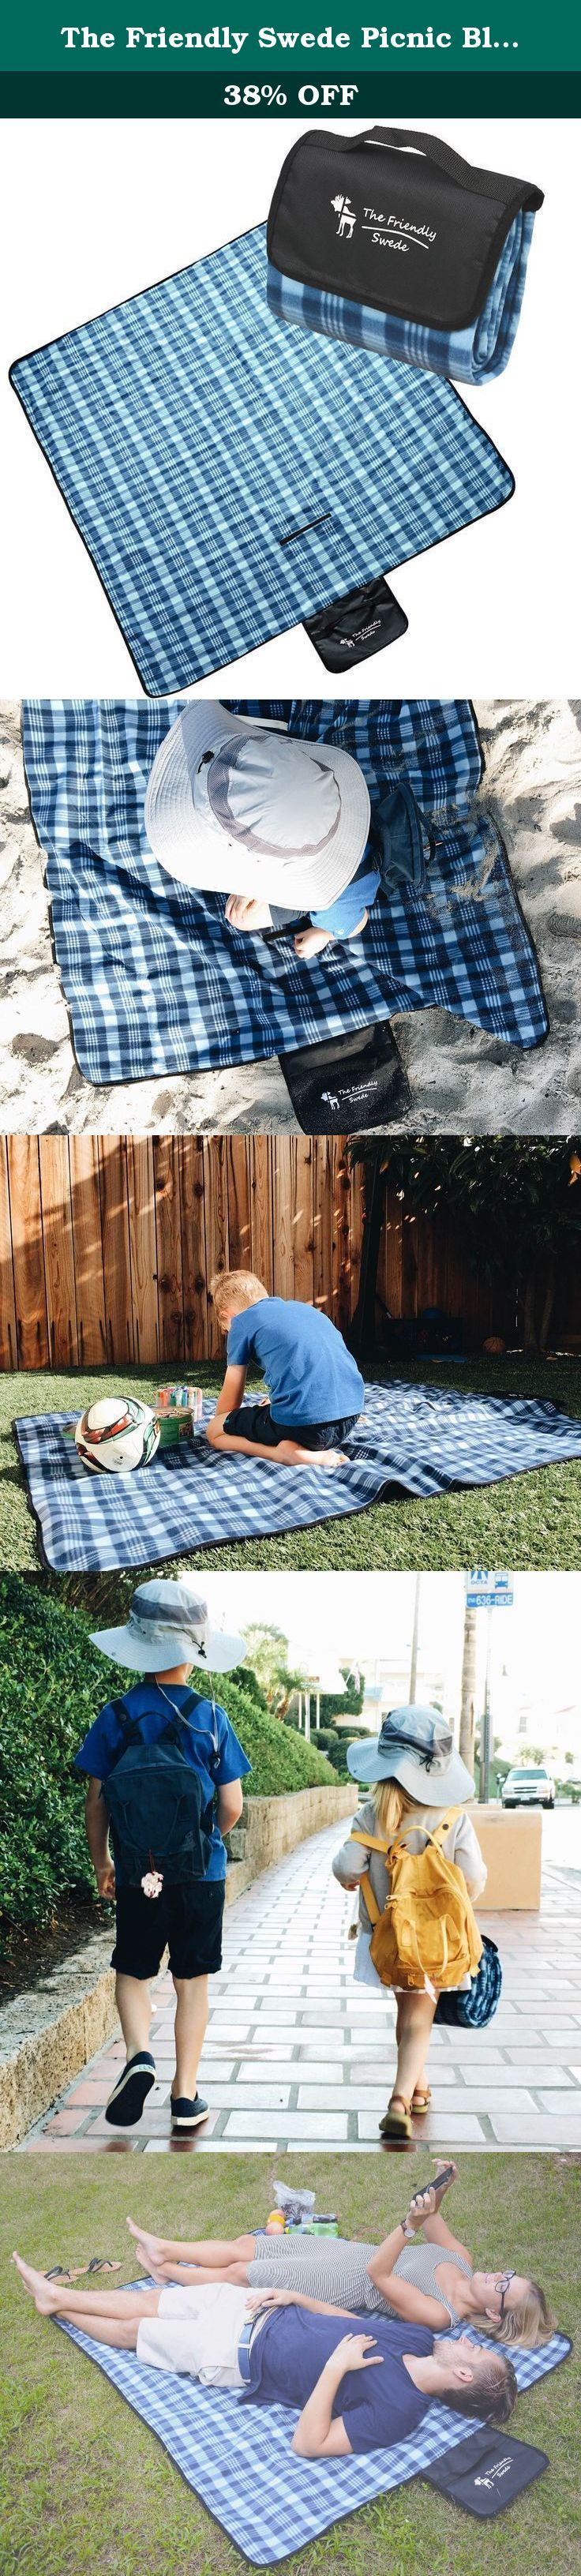 The Friendly Swede Picnic Blanket with Strap. The Friendly Swede Picnic Blanket with Strap WHEN DO YOU BENEFIT FROM A PICNIC BLANKET? - At a picnic (obviously) - At sporting events - At the beach - At outdoor concerts - In the park - Whenever you want something soft to sit on or wrap around you HOW TO FOLD YOUR BLANKET 1. Lay your blanket on the ground with the checkered side down. 2. Fold it about 20cm (8 inches) in on both sides. 3. Fold it again so one side goes over the other and the...